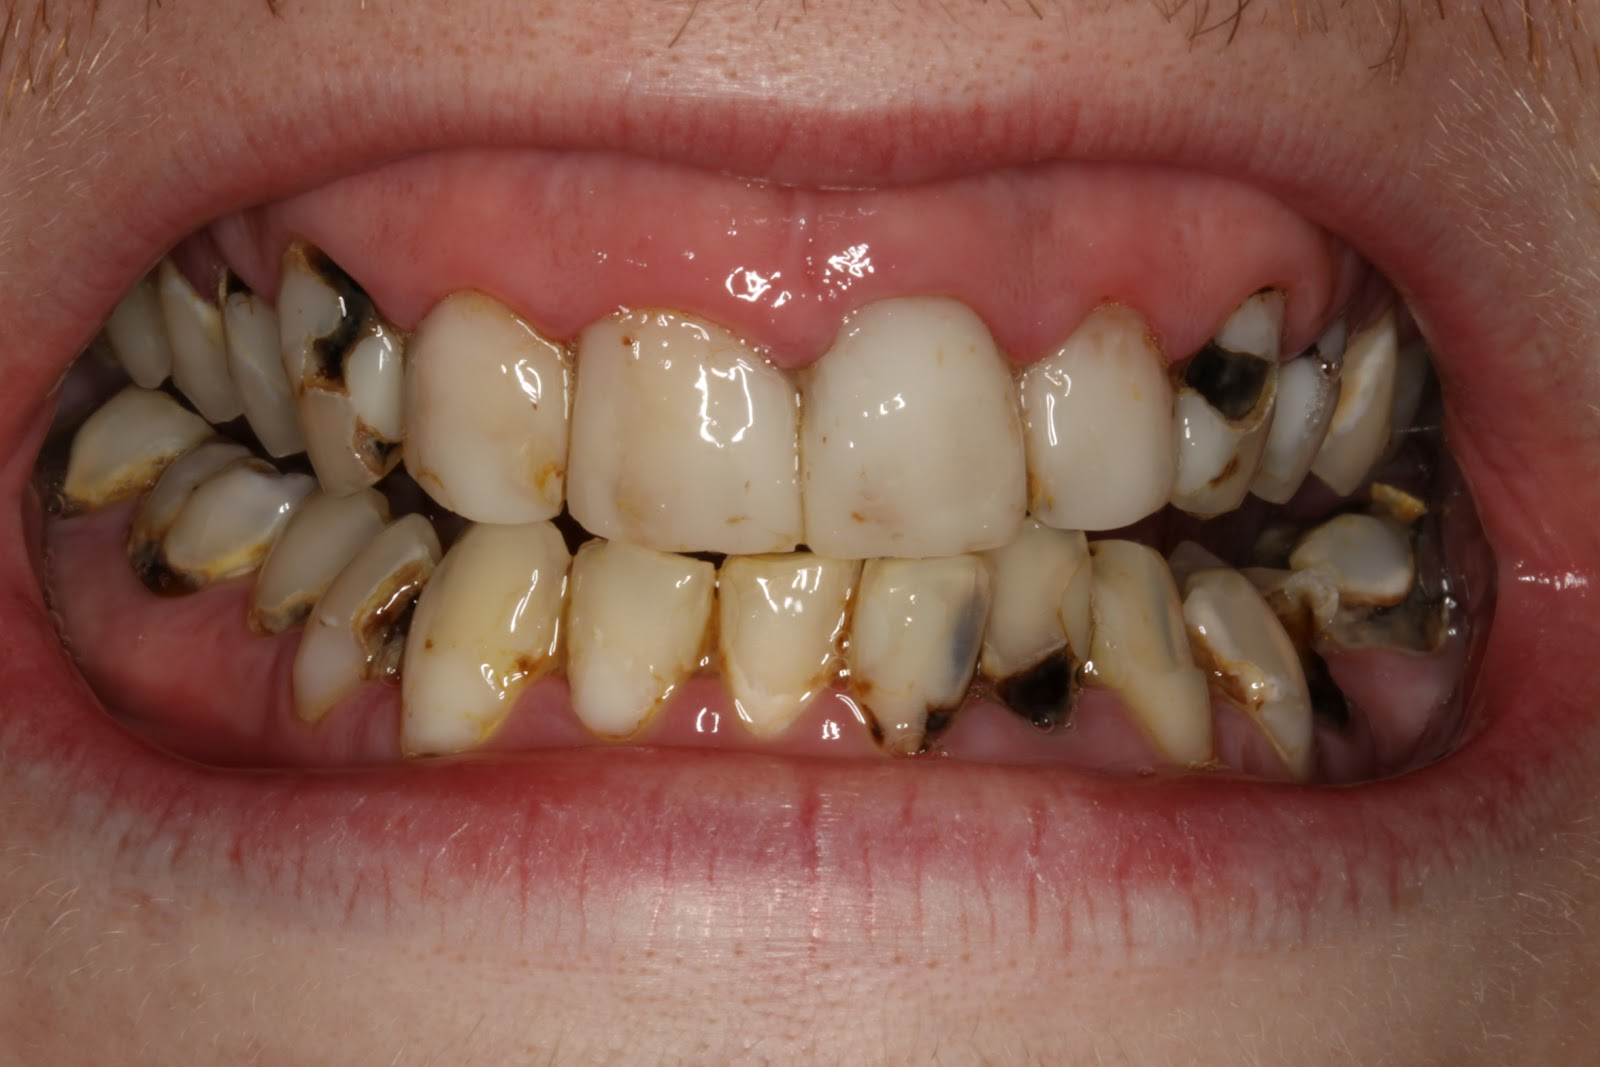 teeth-decay-jg1o9fpy.jpg